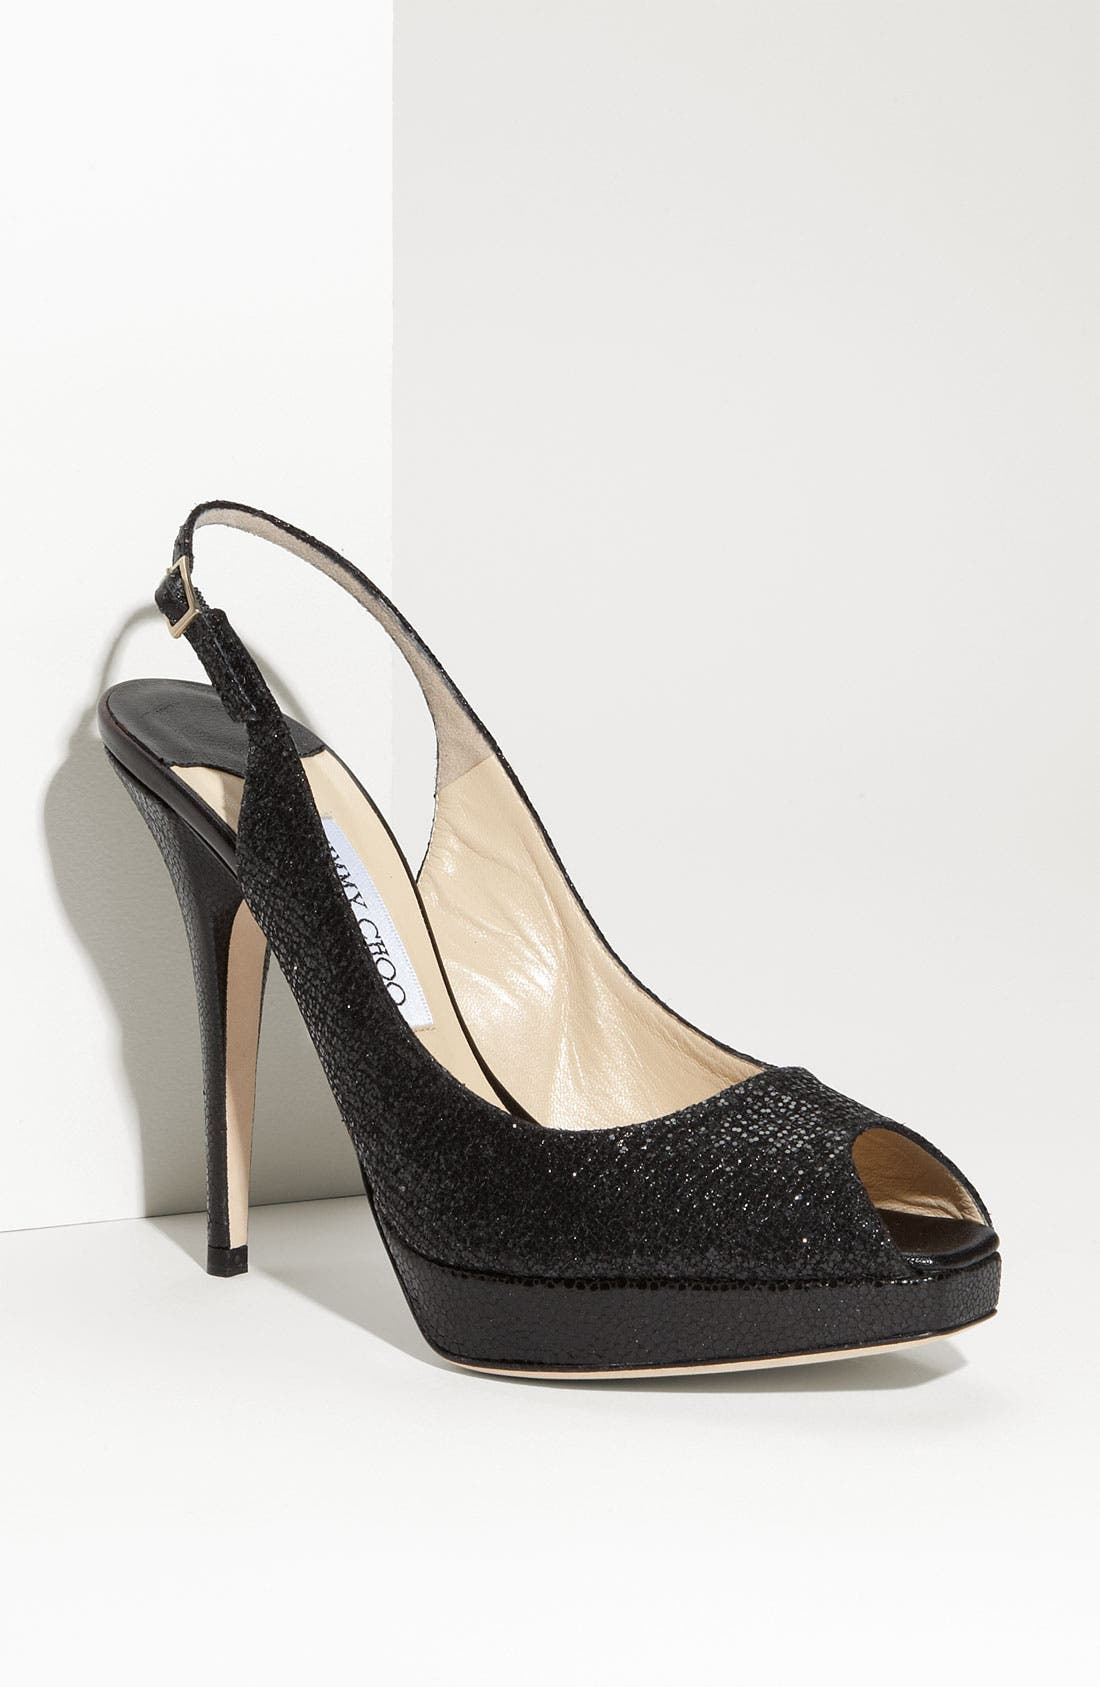 Main Image - Jimmy Choo 'Clue' Glitter Slingback Pump (Women)